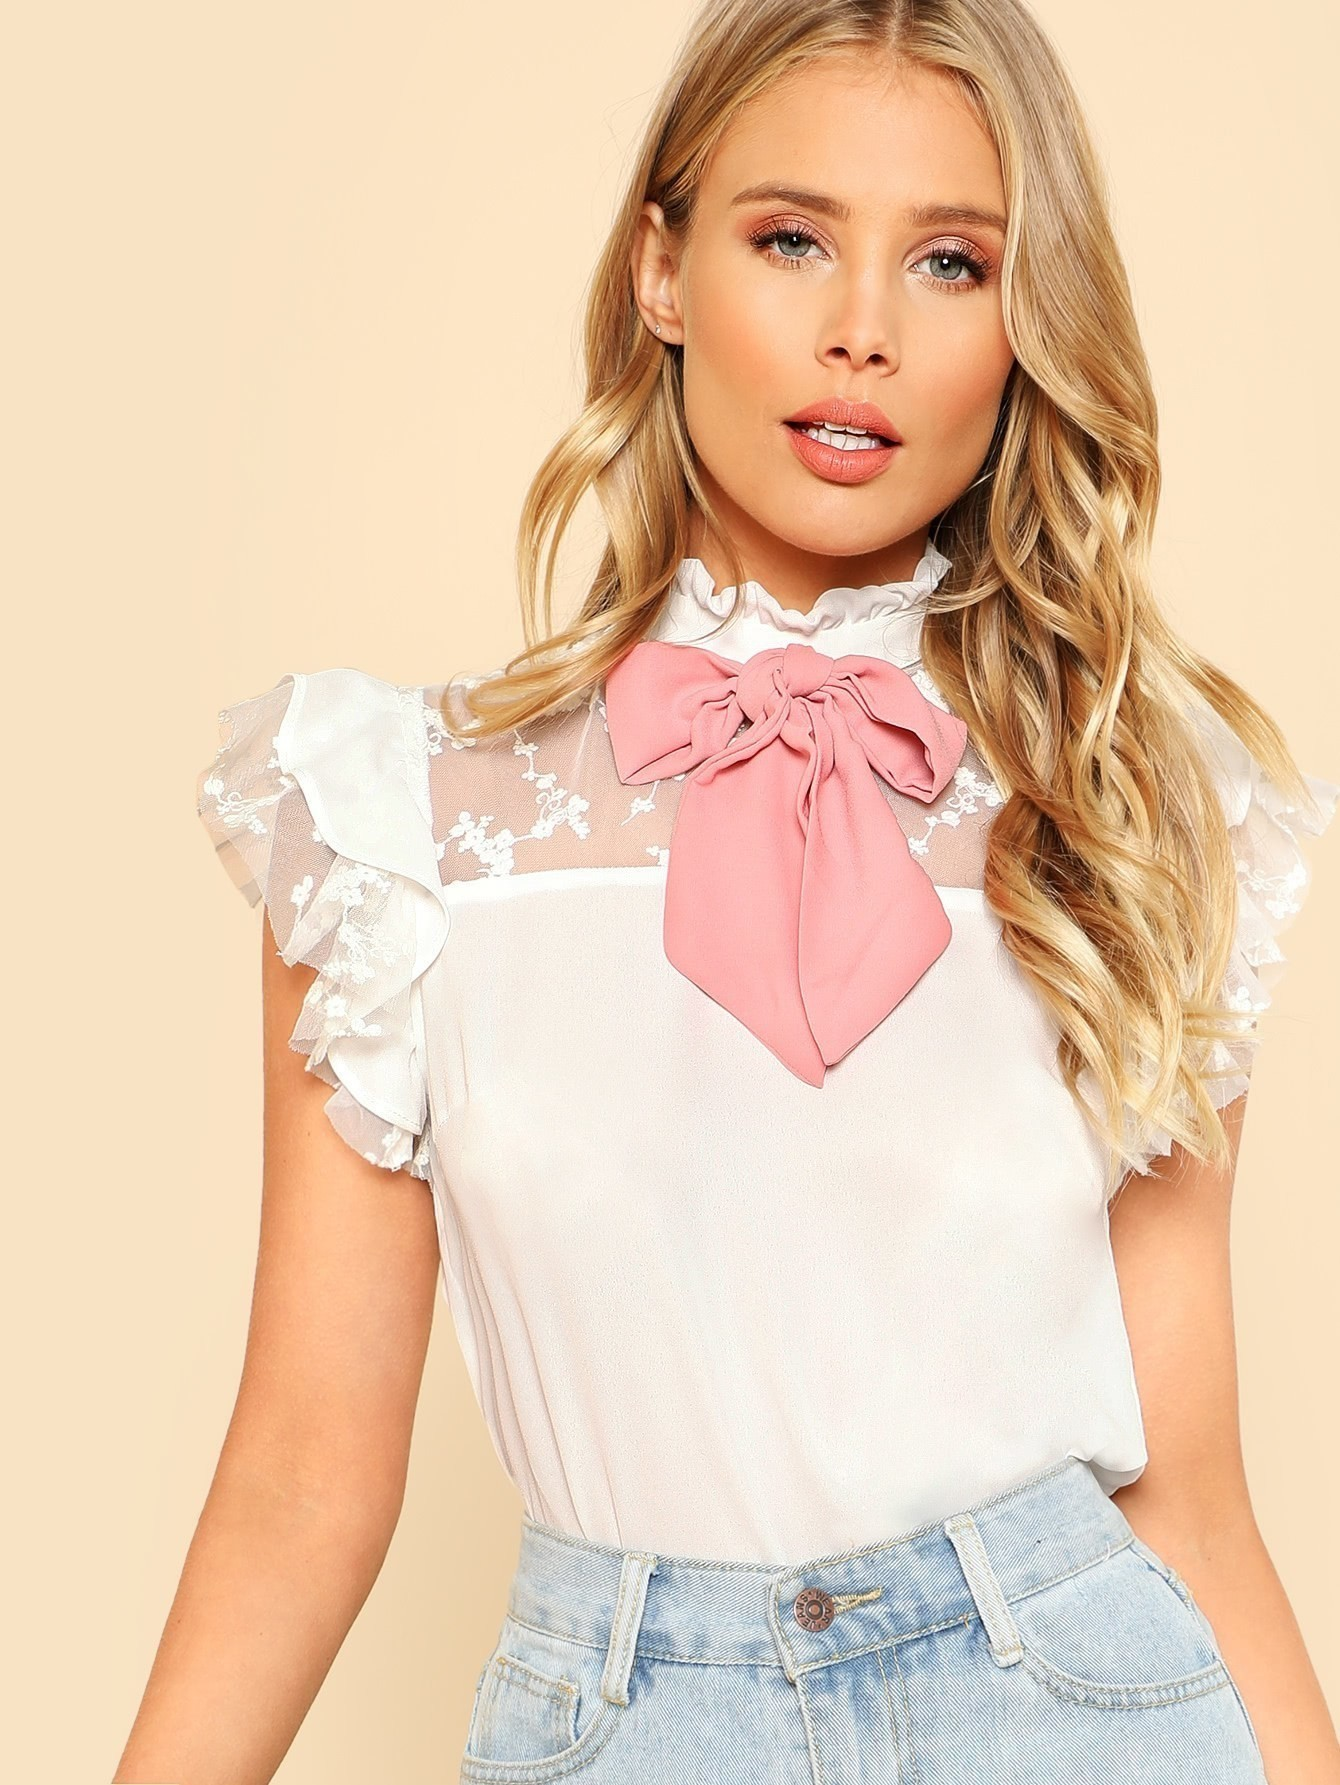 Tie Neck Embroidered Mesh Yoke Top blouse171128715